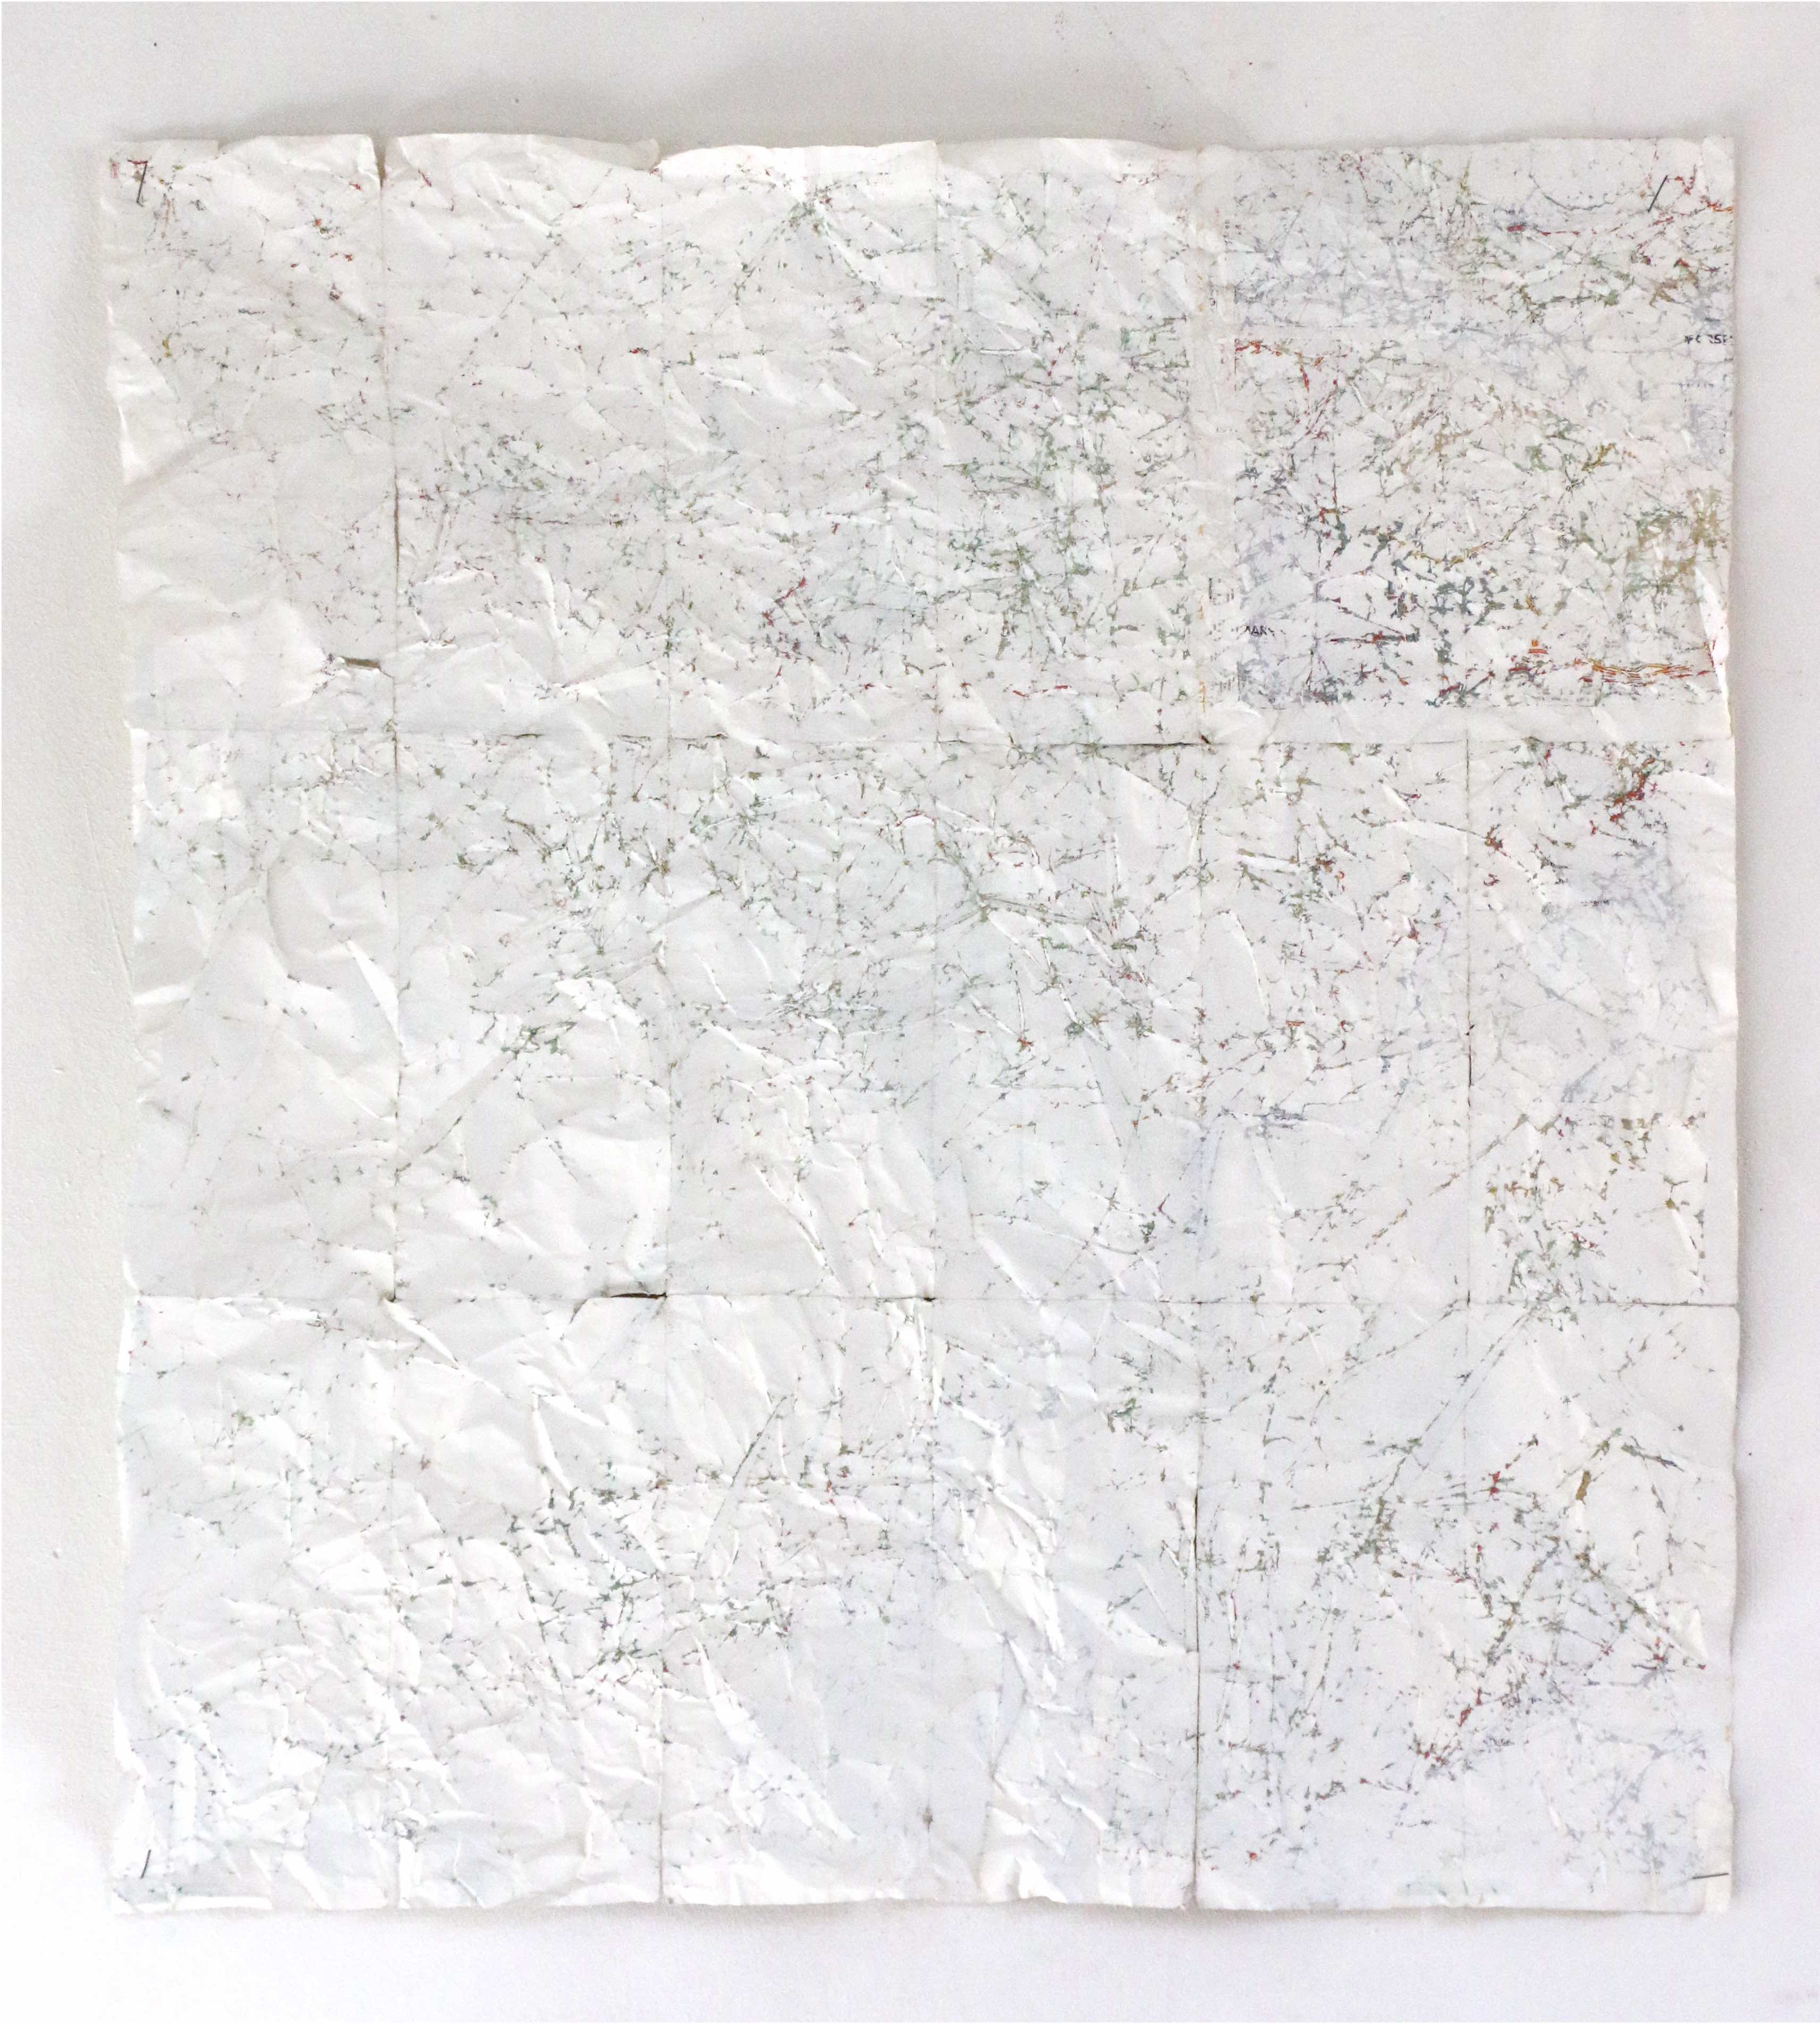 Sophie Bouvier Ausländer - Lost (White), Gouache on maps, 73 x 65 cm, 2015